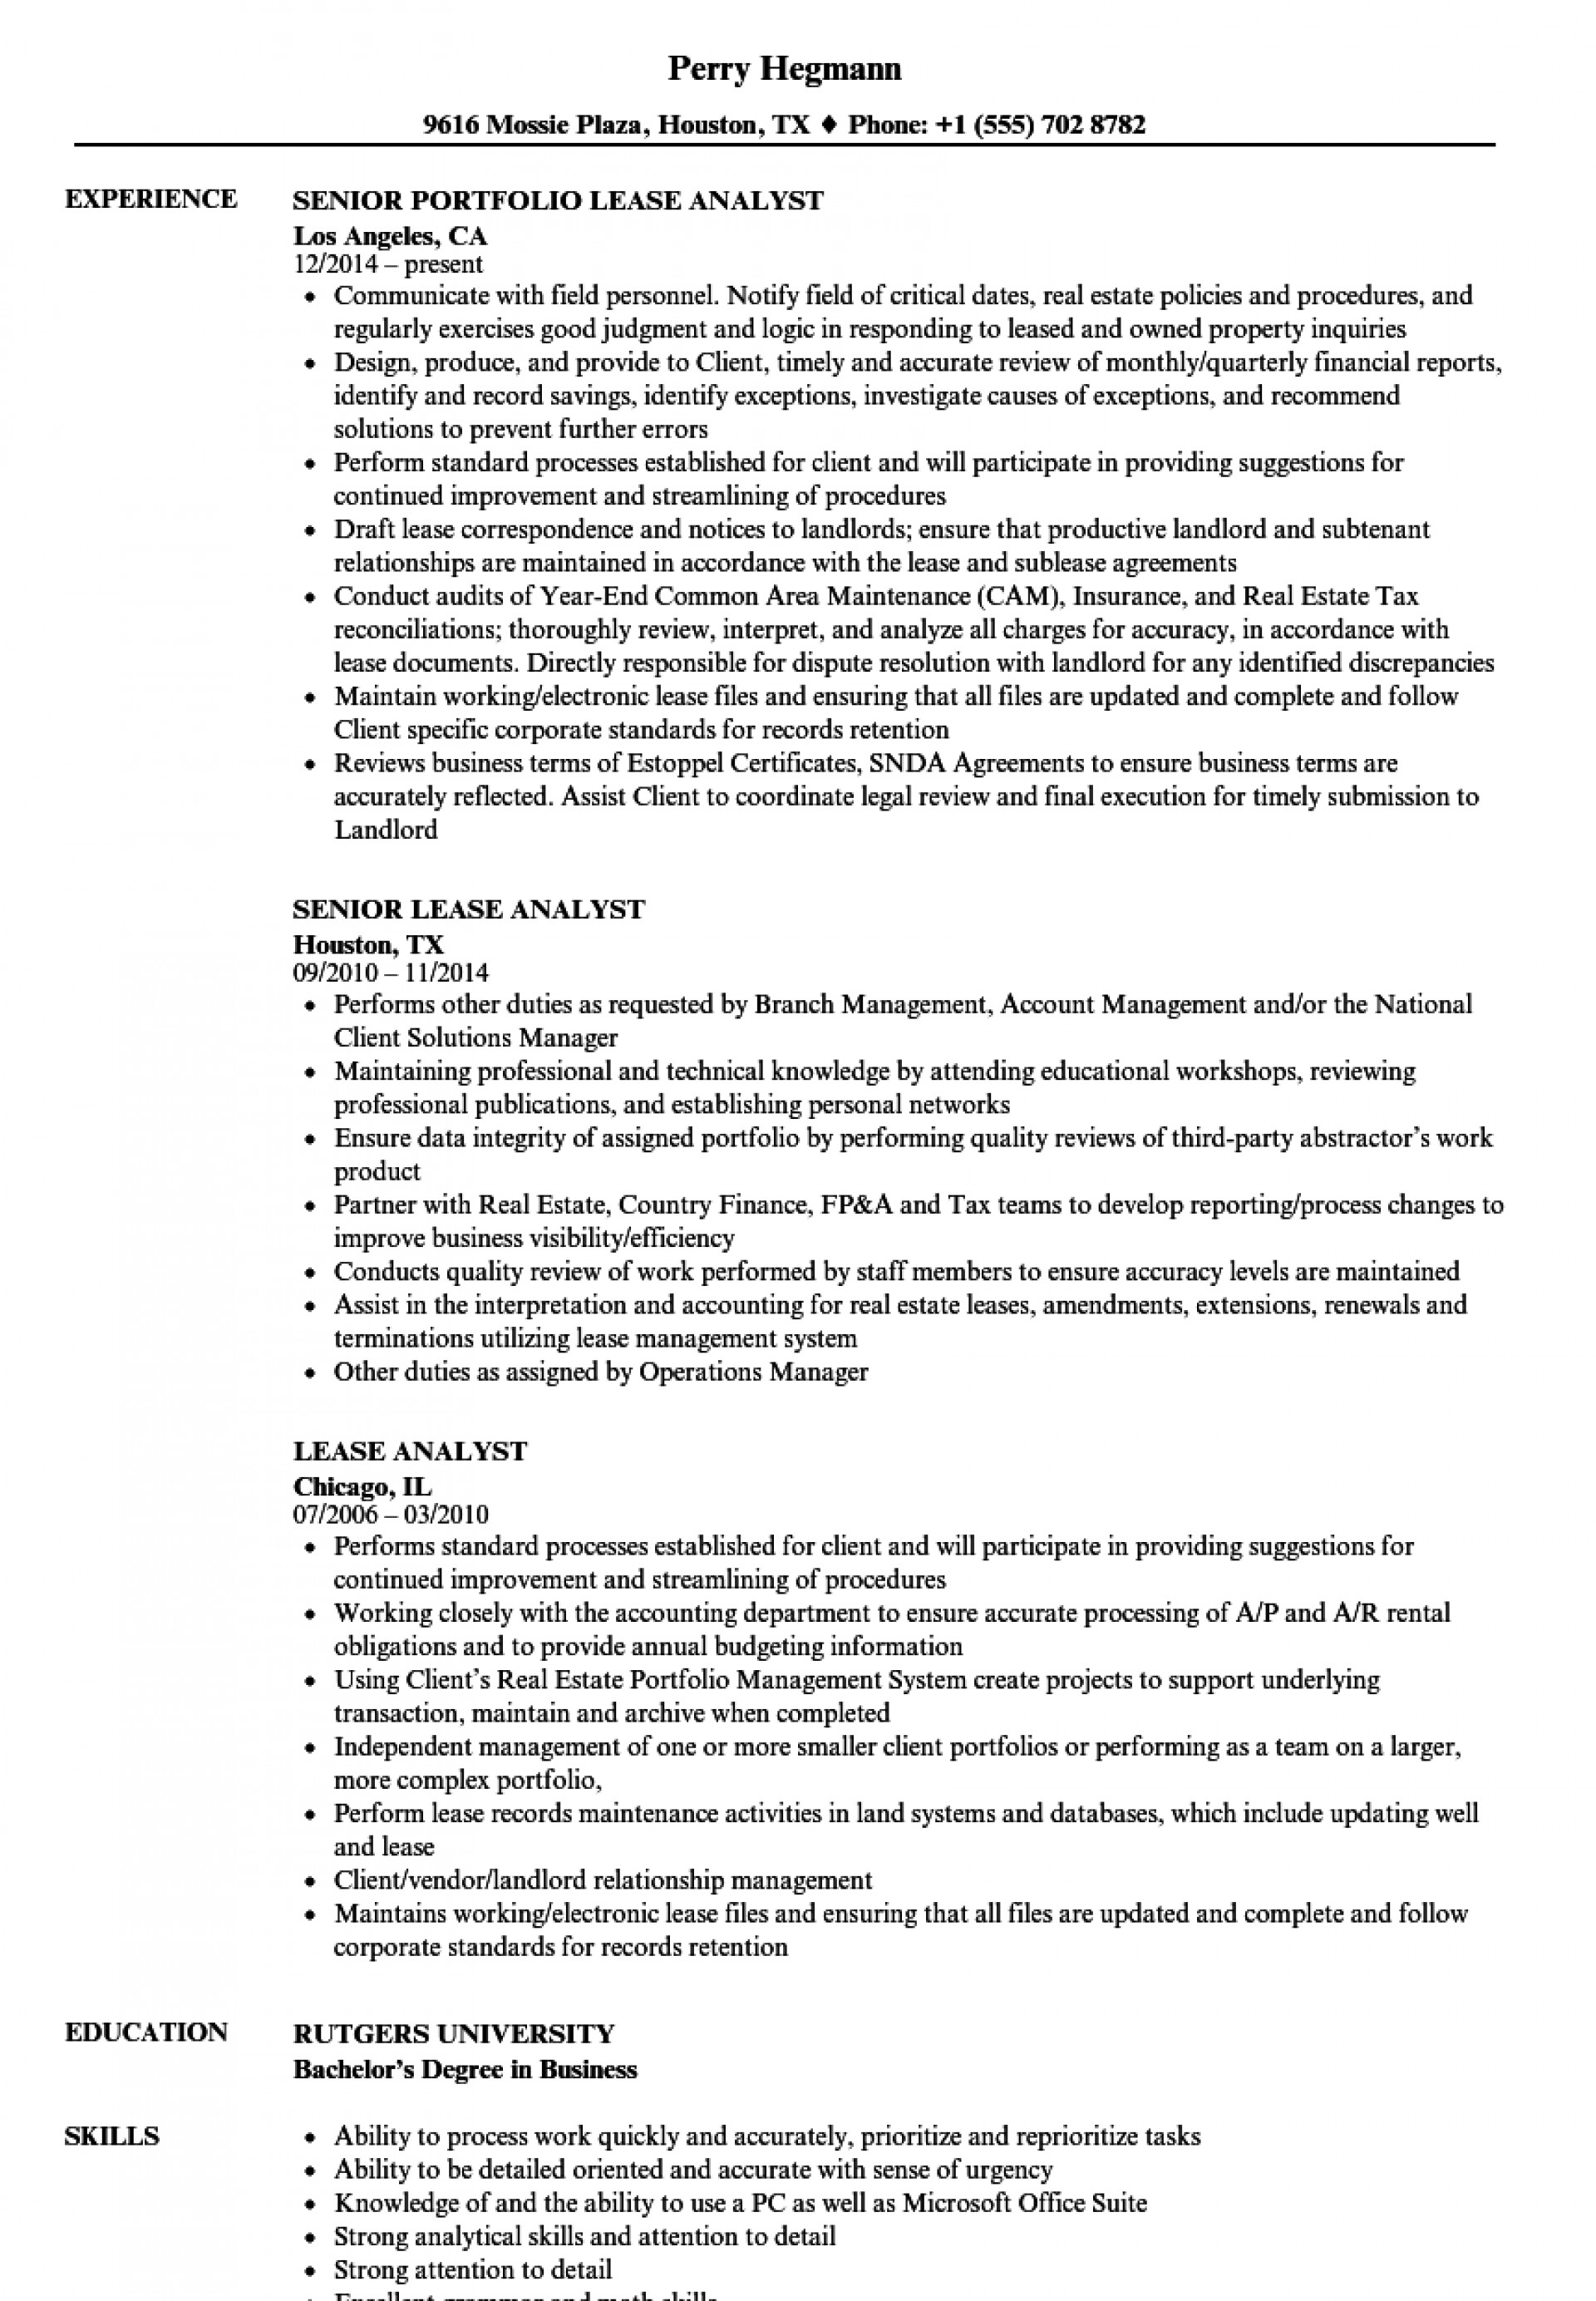 018 Nationalism Essay Lease Analyst Resume Sample Impressive Topics African Pdf 1920